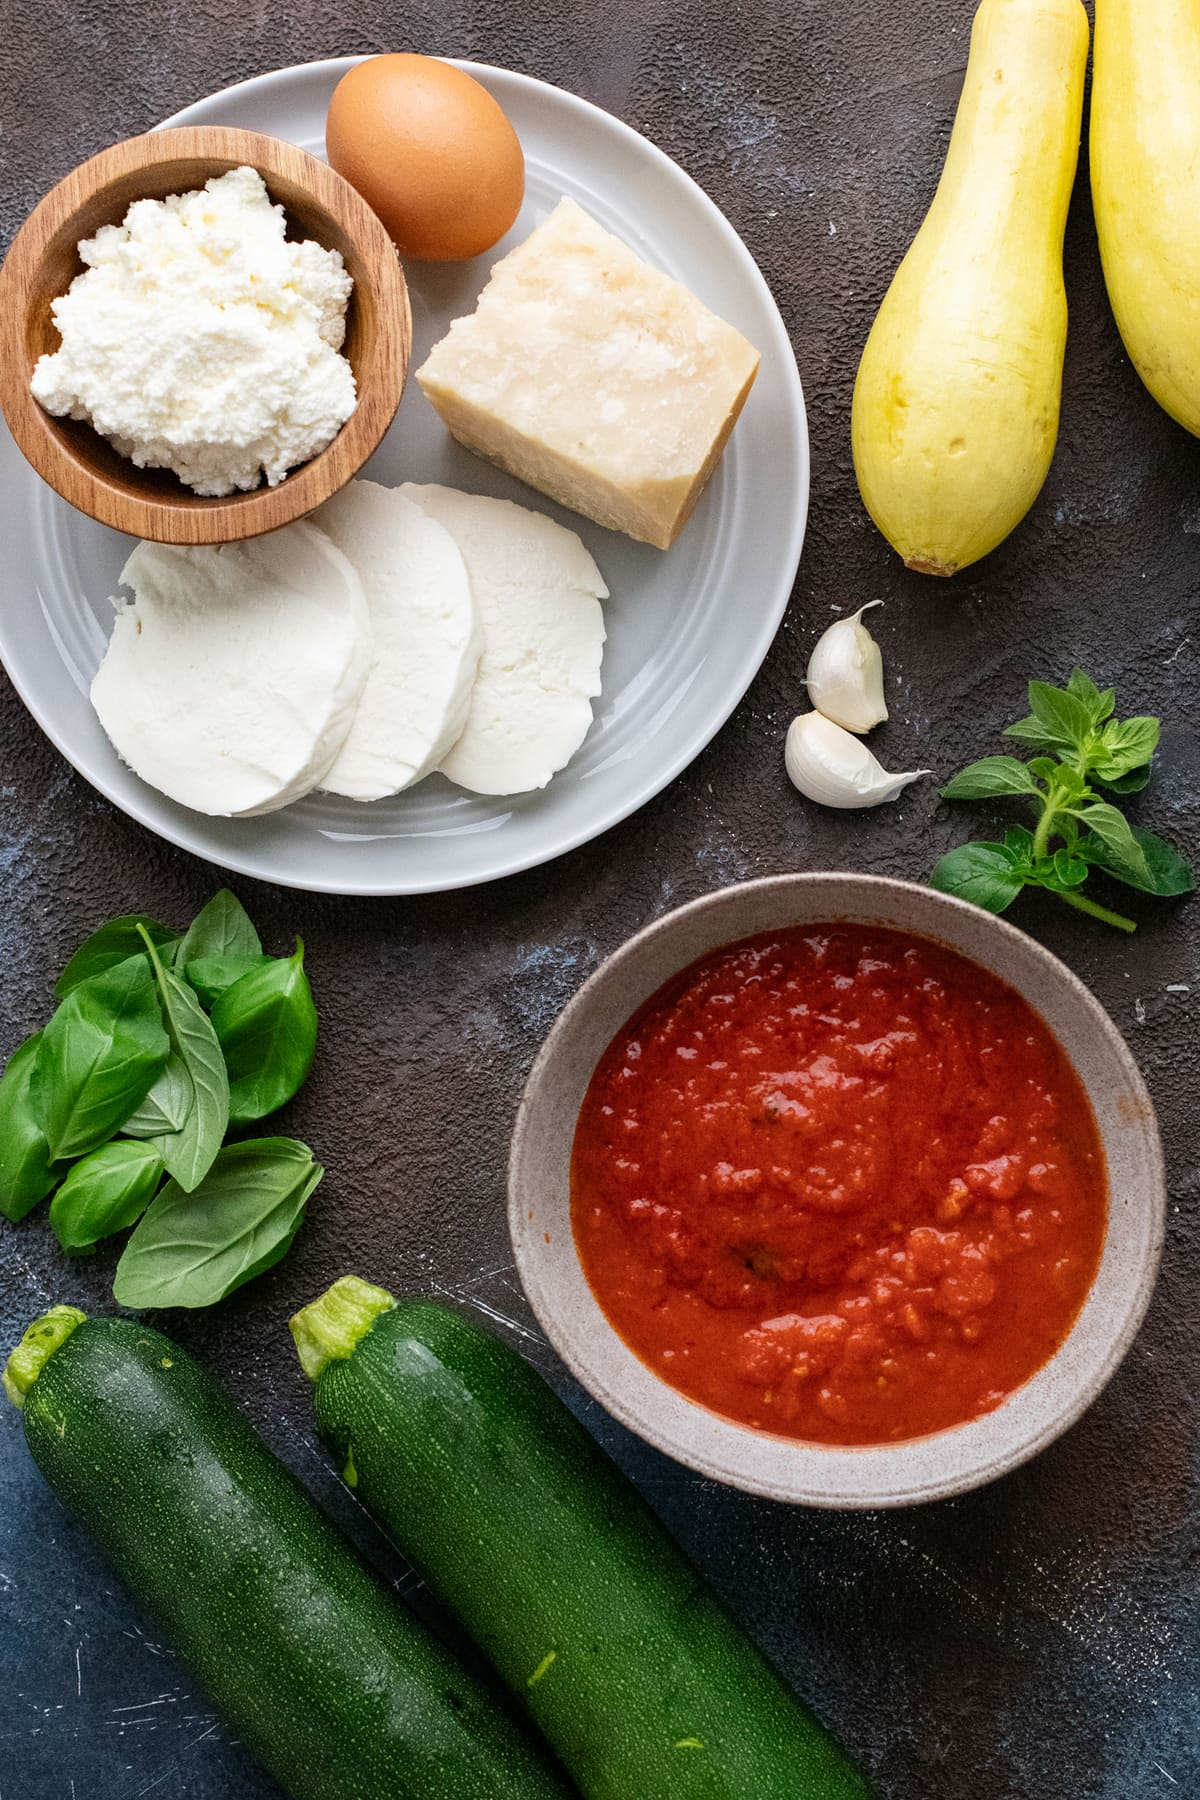 ingredients for zucchini rollatini arranged on a dark gray background.